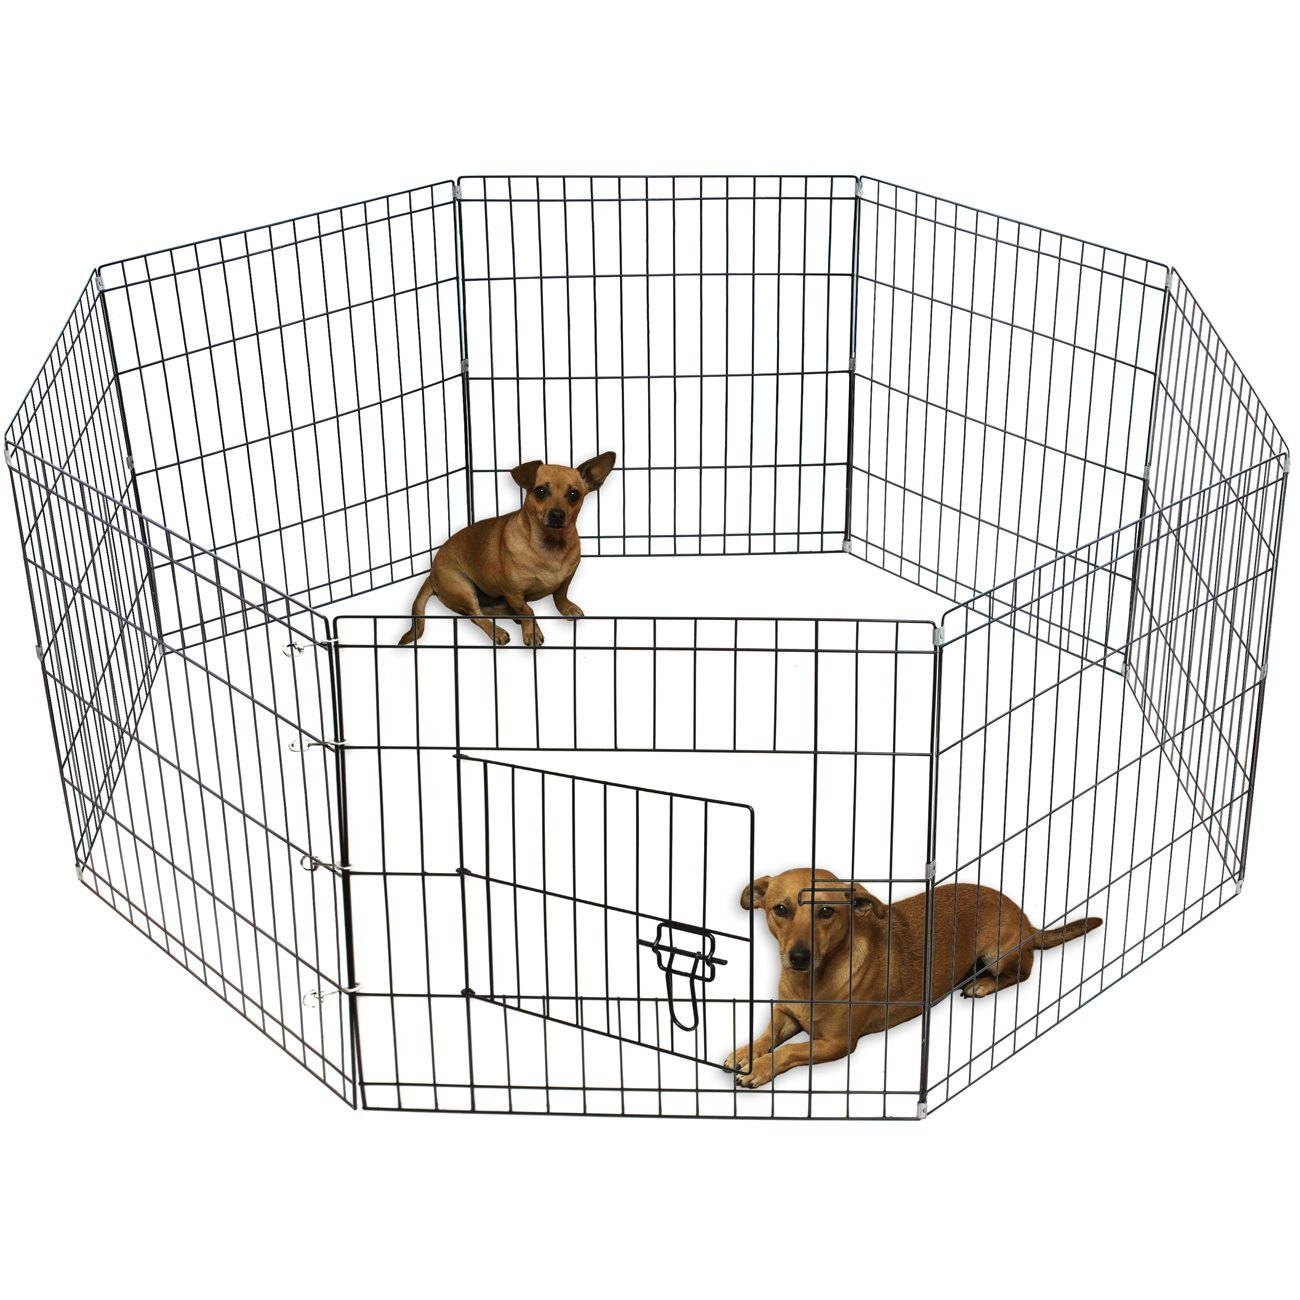 The 5 Best Dog Playpens And Pet Puppy Pens